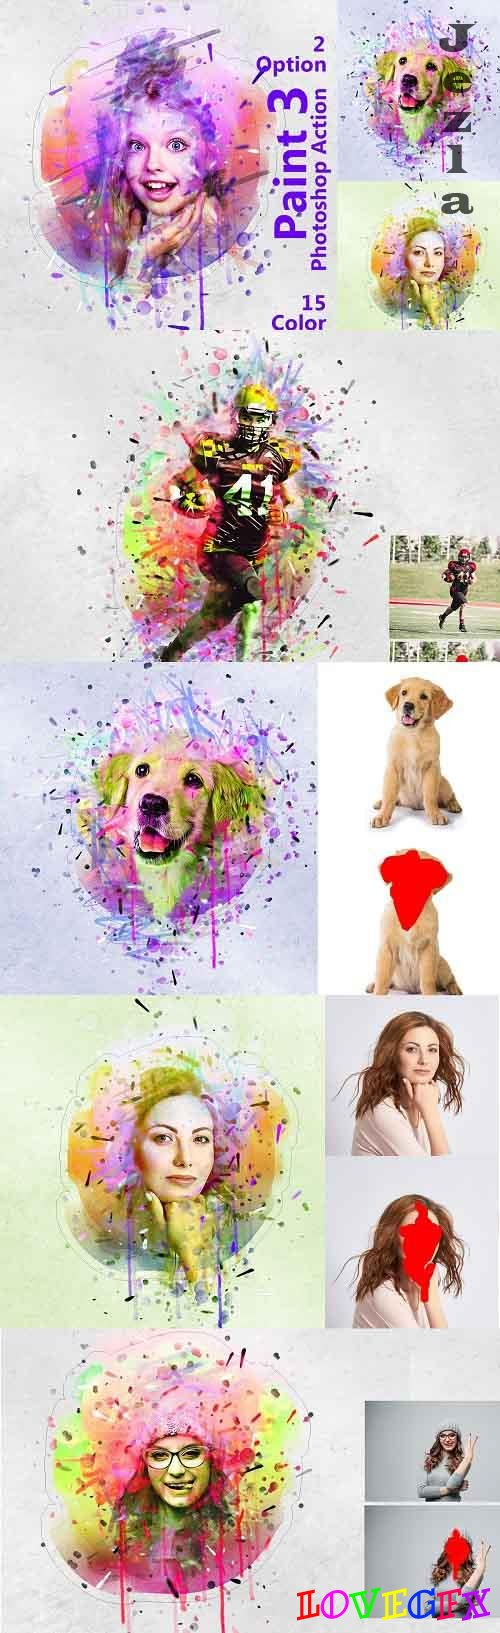 Paint Photoshop Action 5249577